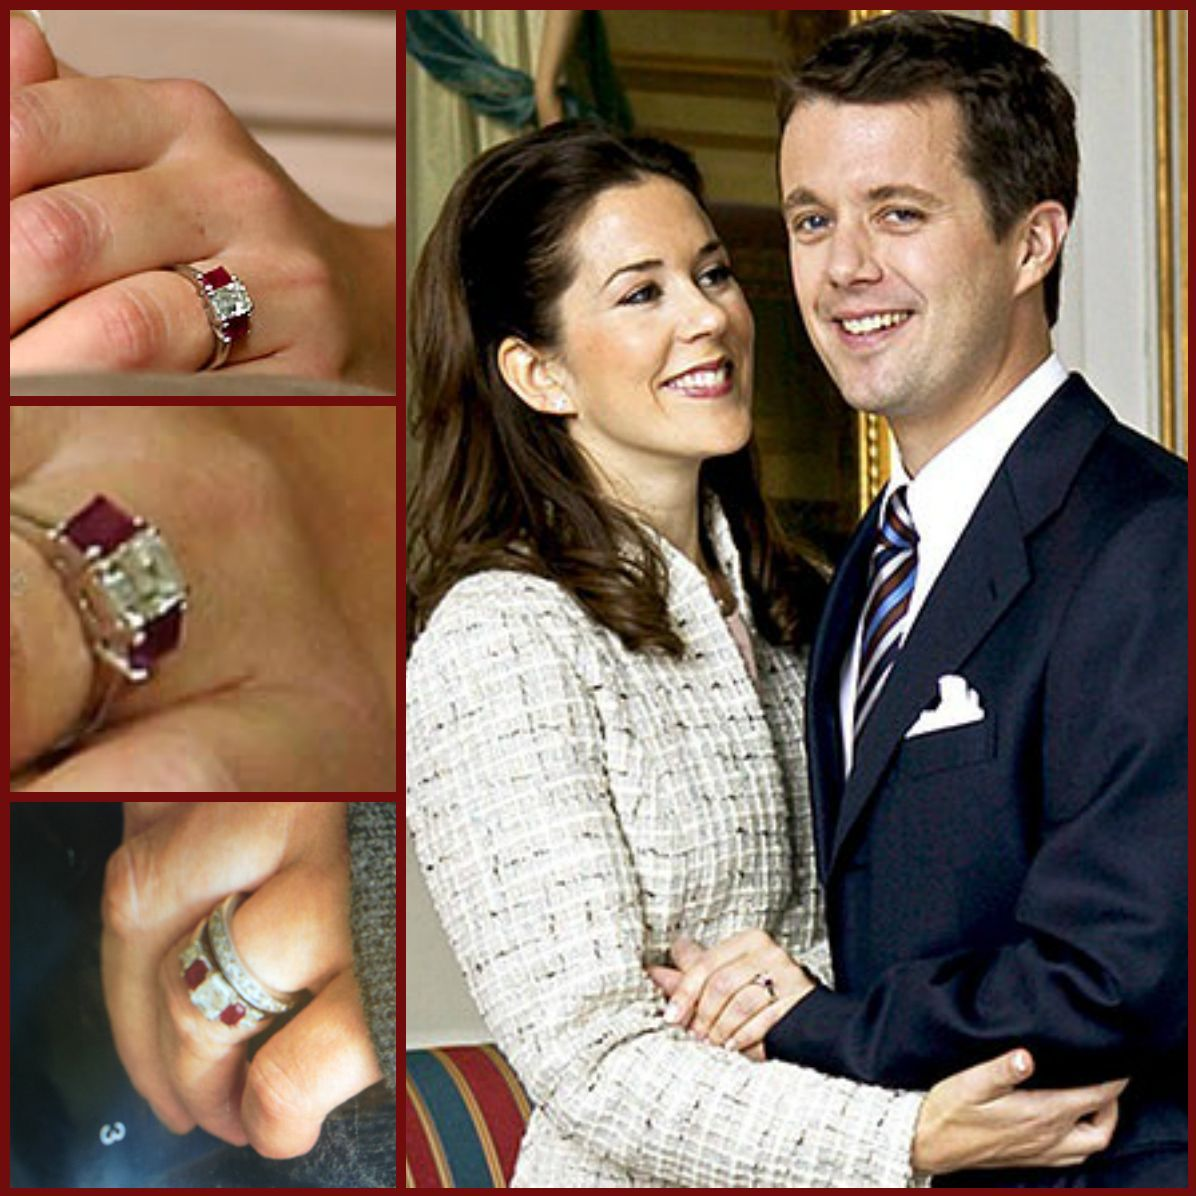 princess rings getty princesses royalty of queens main queen glamour engagement story weddings royal